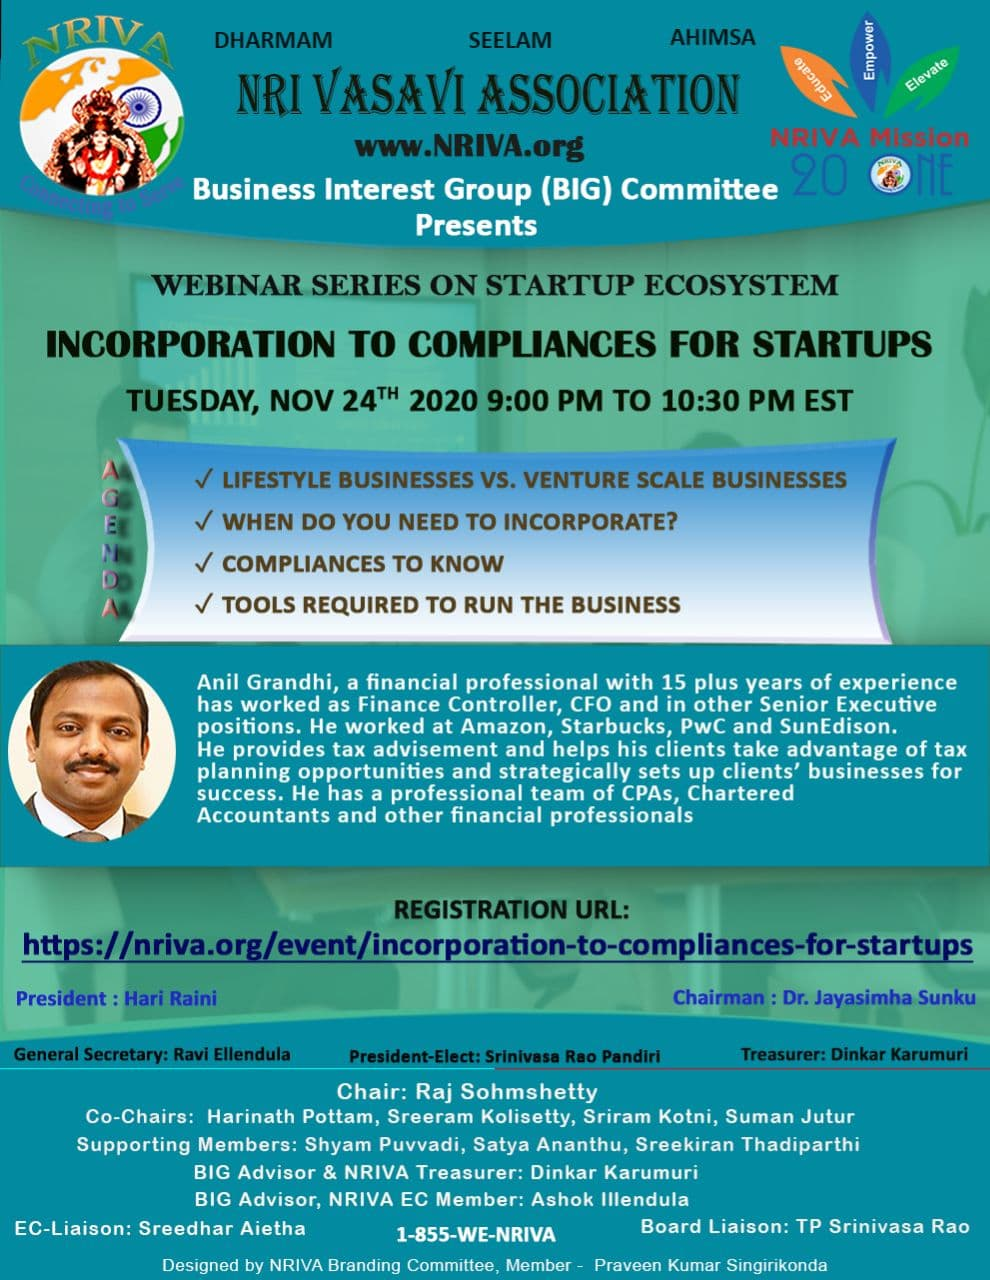 Incorporation to Compliances for Startups